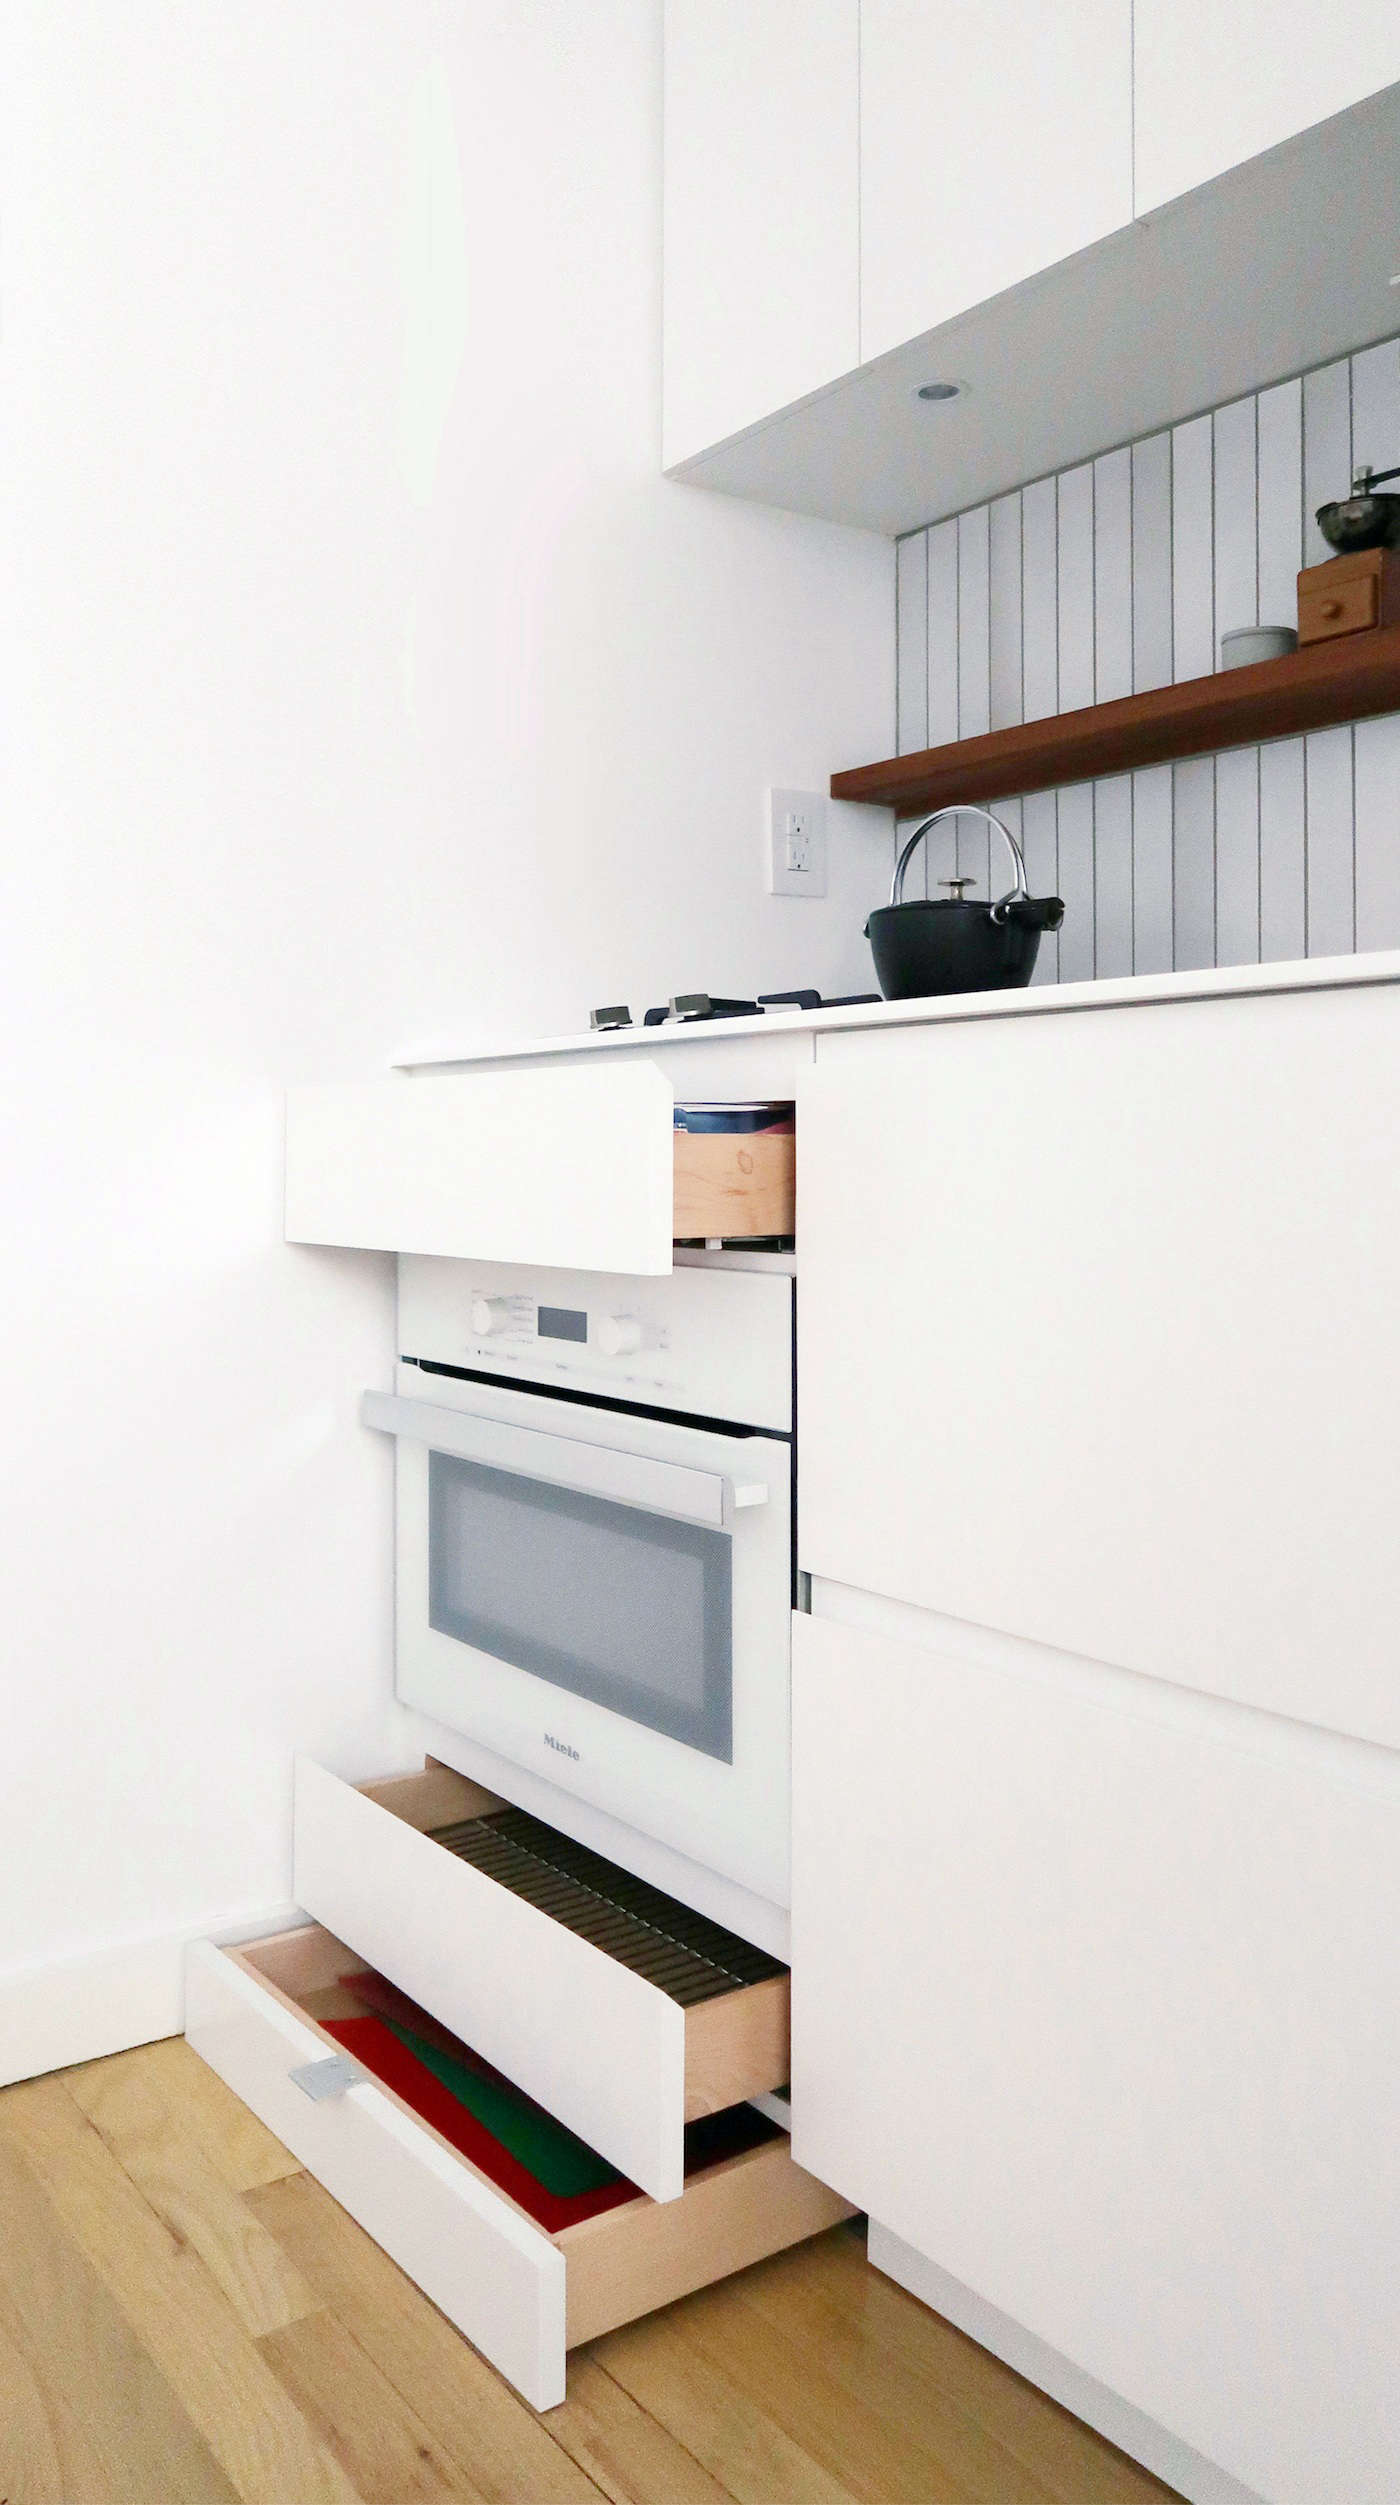 A small Miele speed oven—a combination microwave and convection oven—leaves room for drawers both above and below.